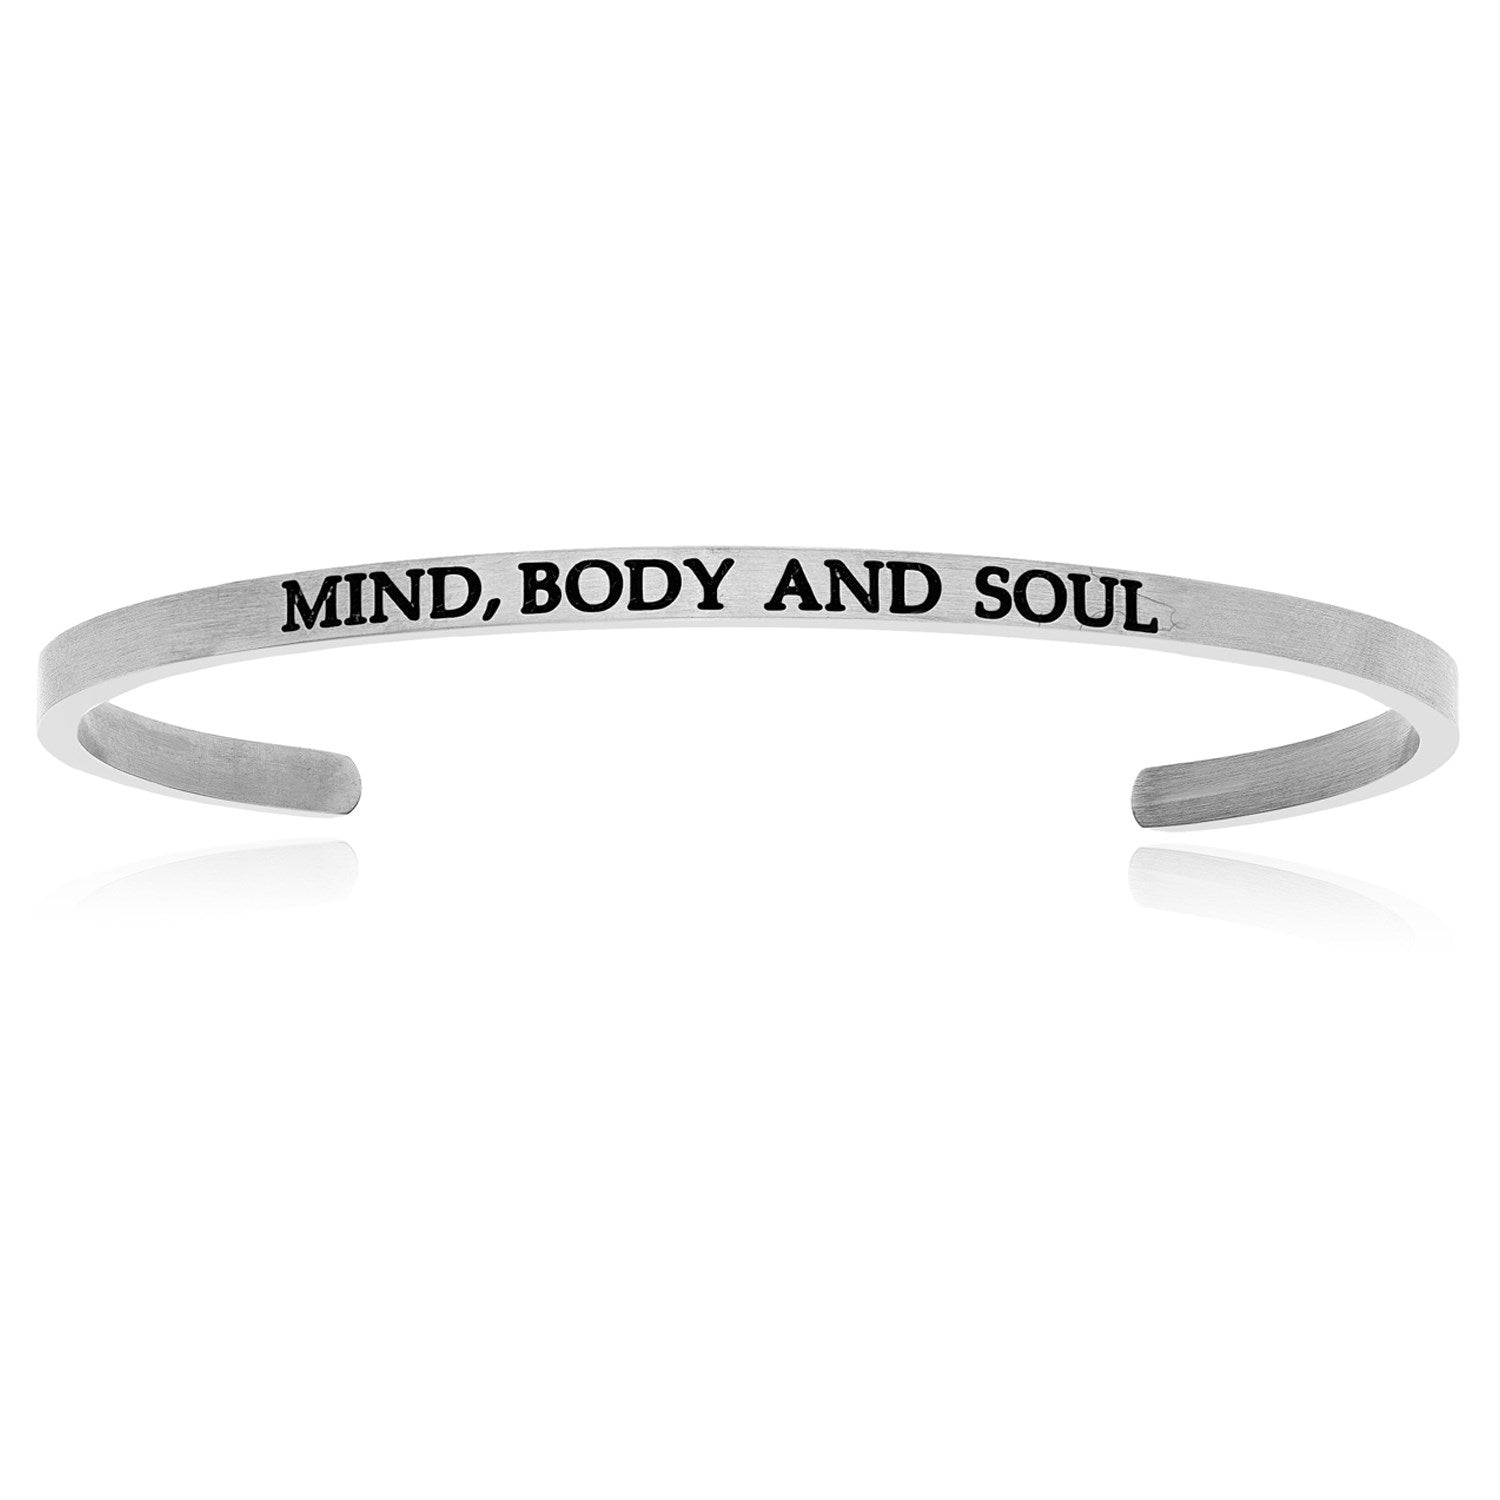 Stainless Steel Mind  Body And Soul Cuff Bracelet